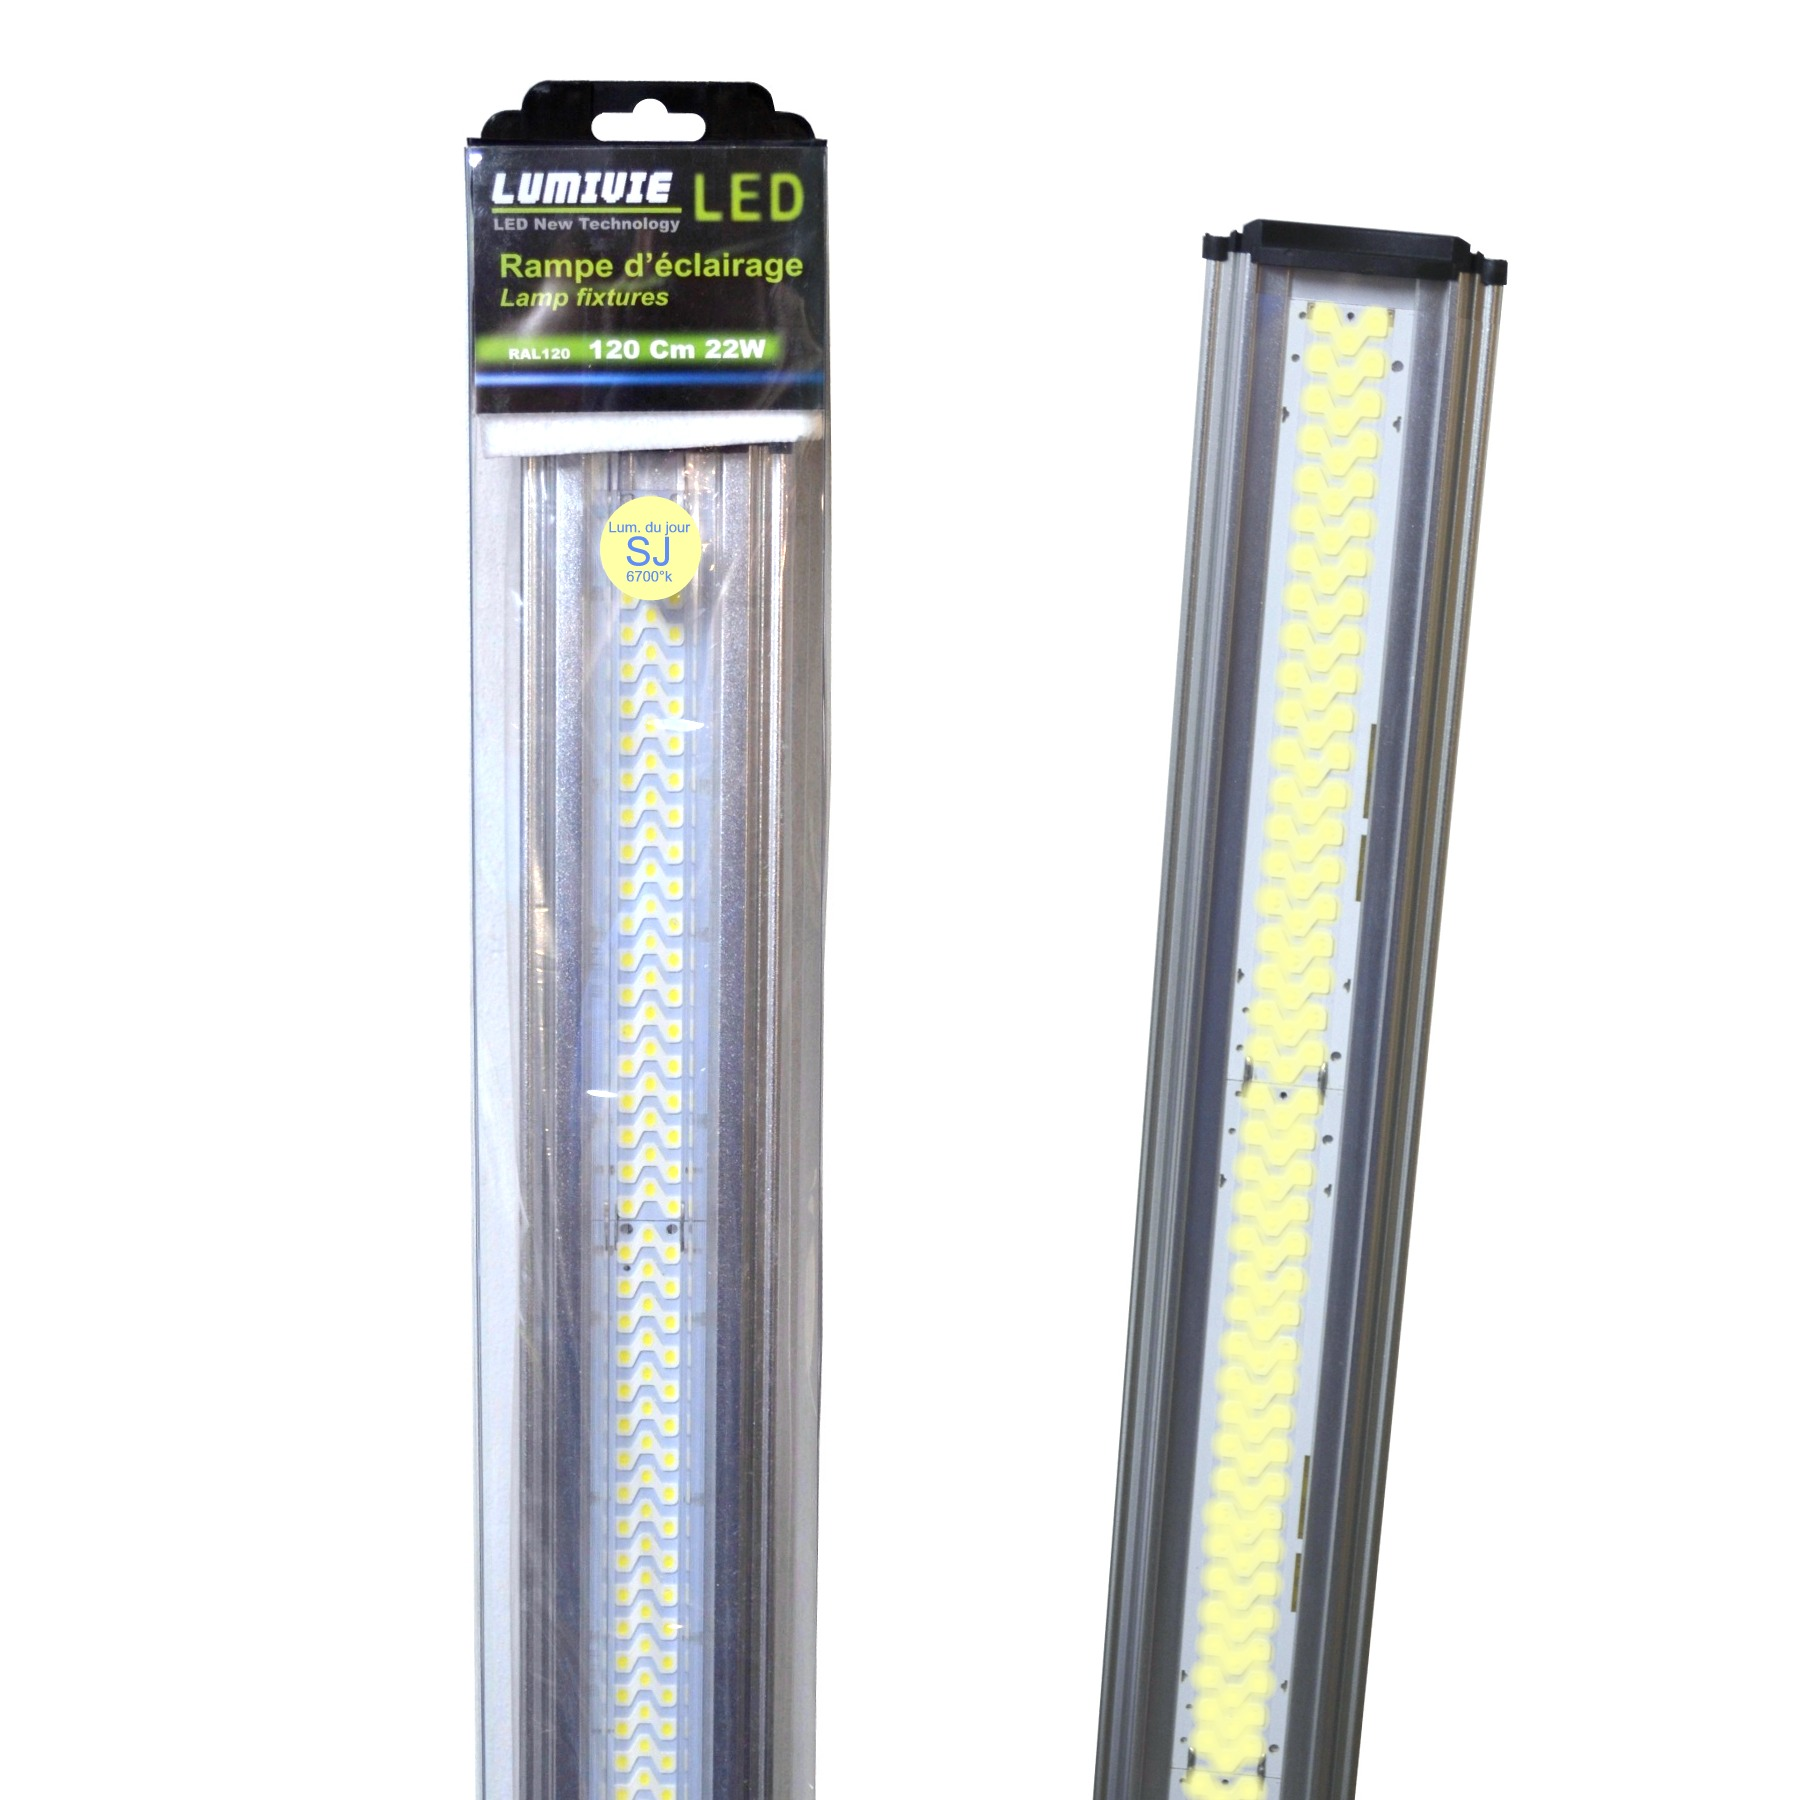 Rampe Eclairage Aquarium Led Rampes D 39 39éclairage à Leds Aquavie Lumivie Pour Eau Douce